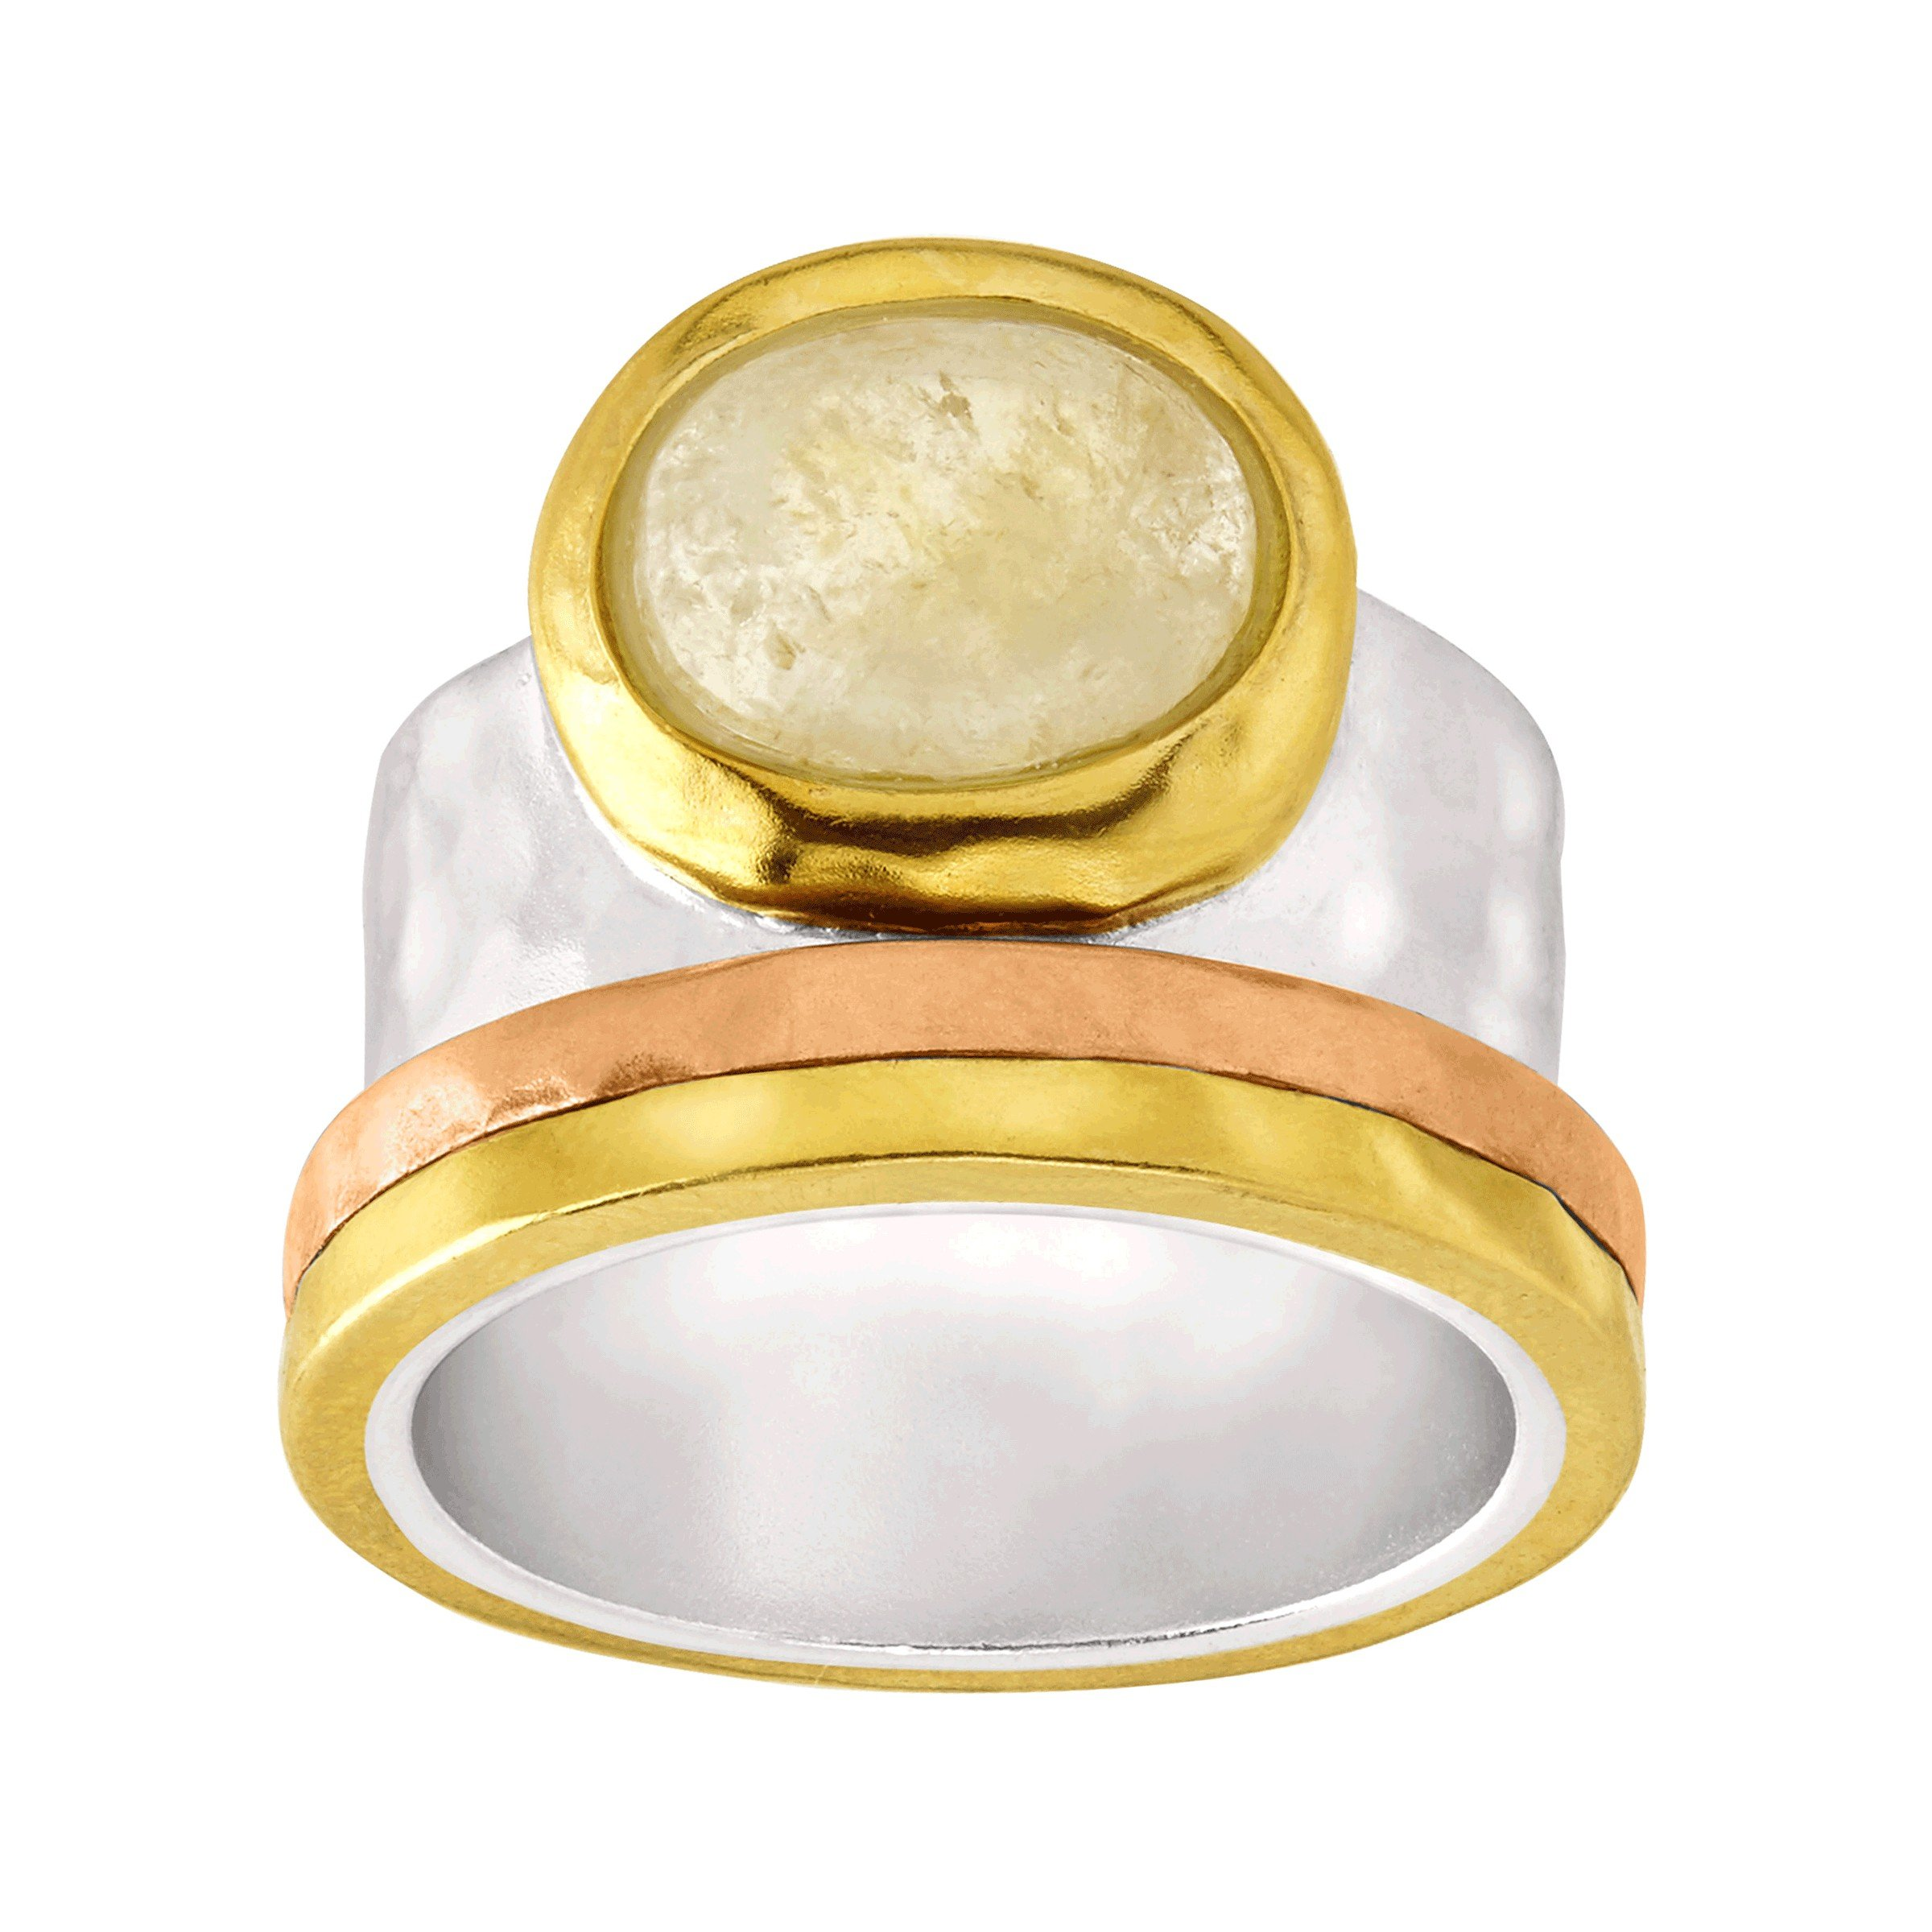 Silpada 'Metallic Mix' Natural Citrine Ring in Sterling Silver, Brass, and Copper